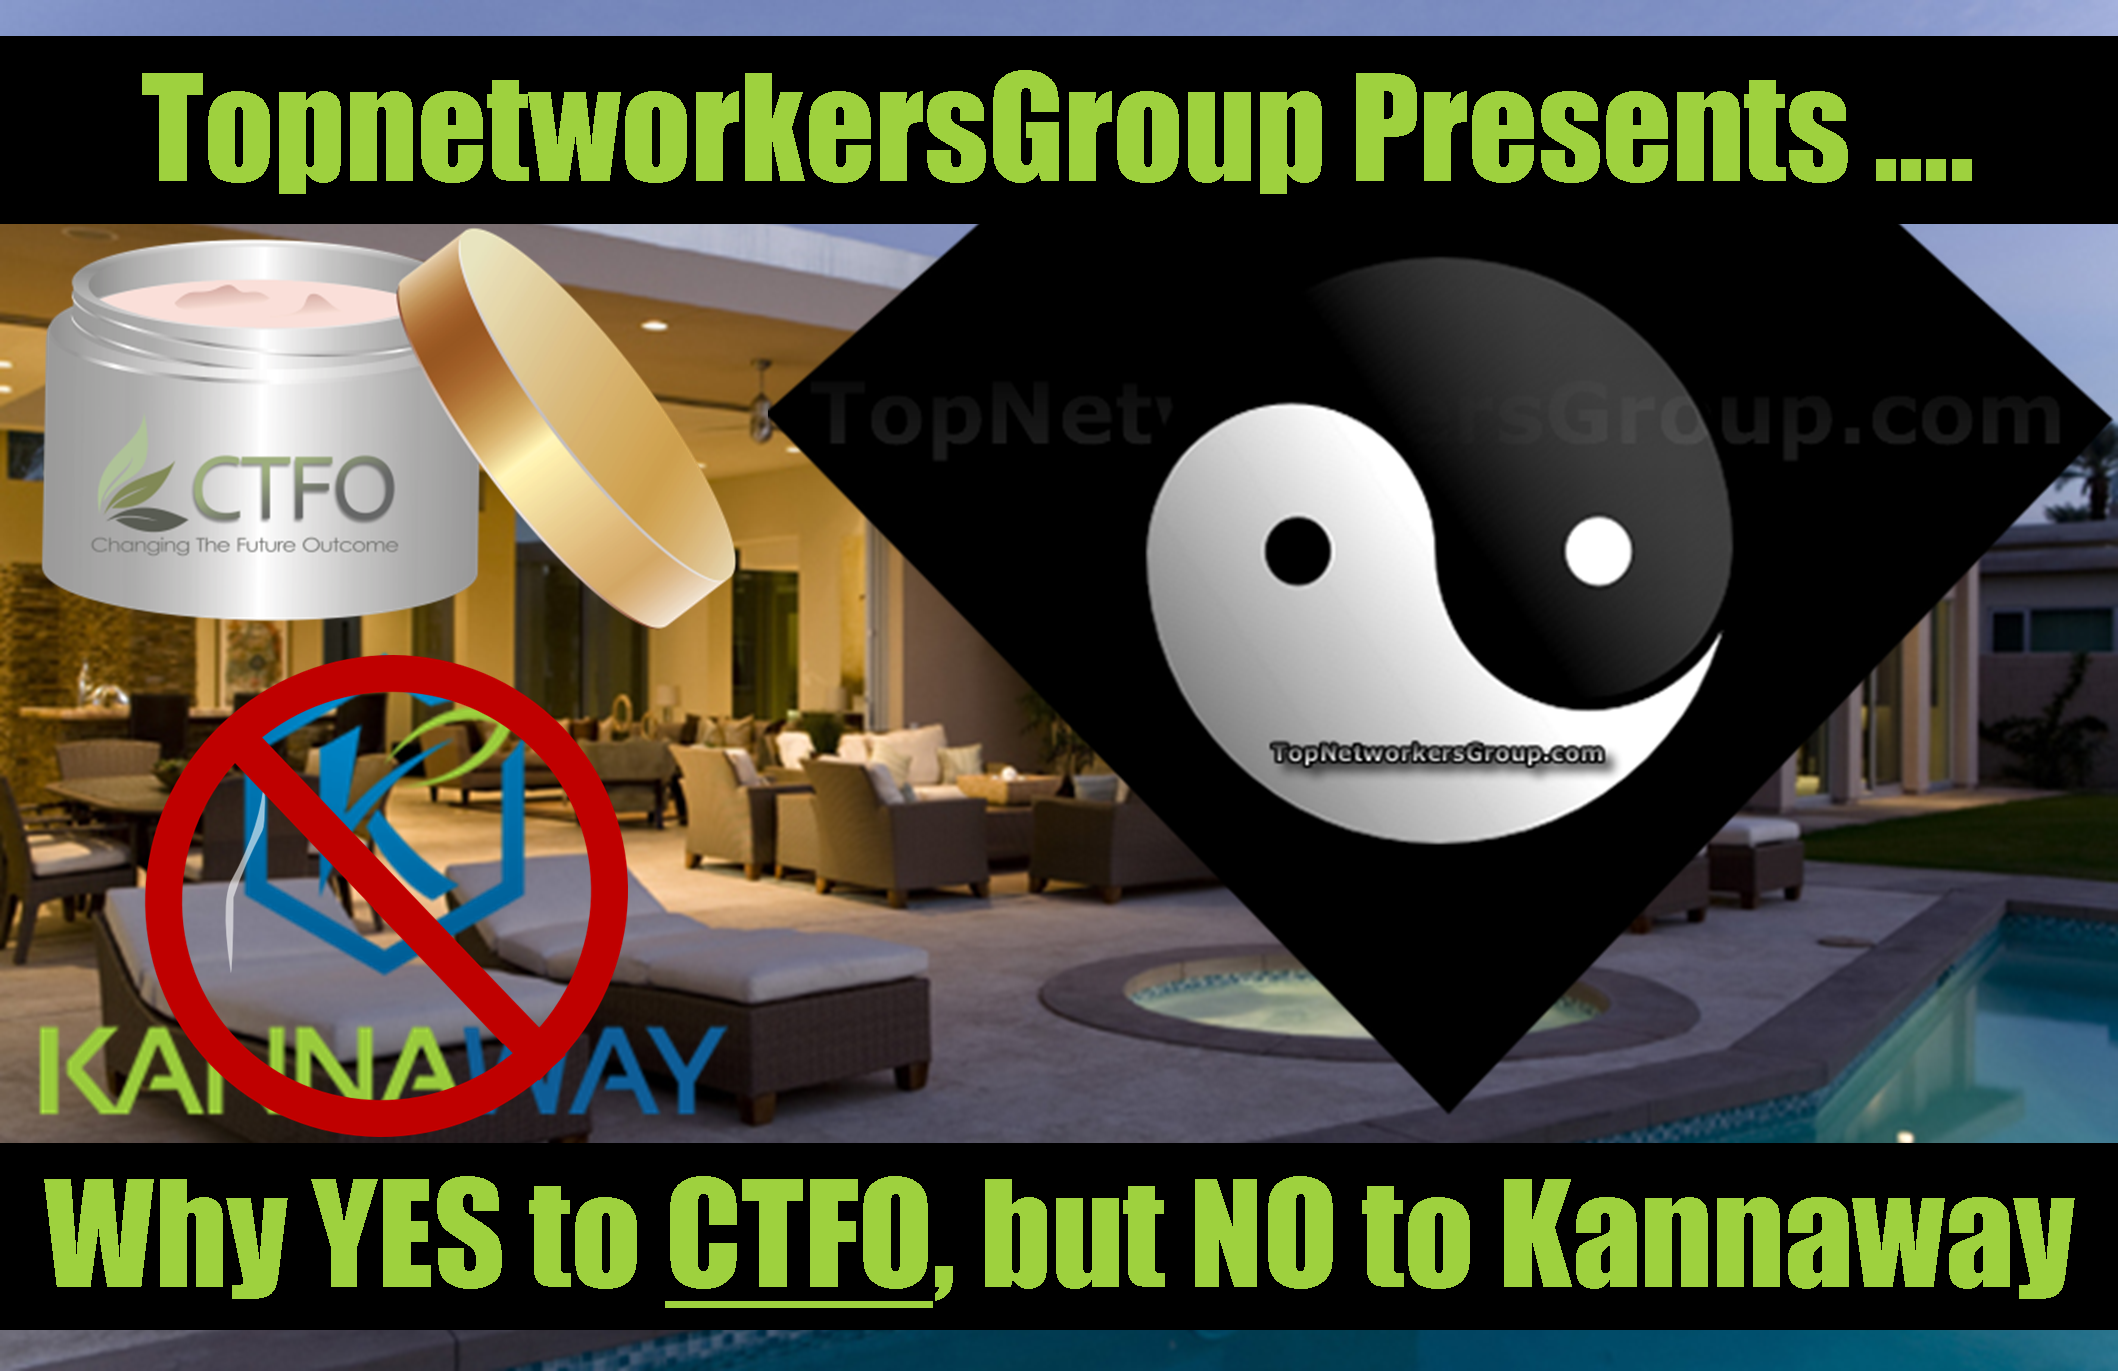 removal of my youtube video on ctfo vs kannaway